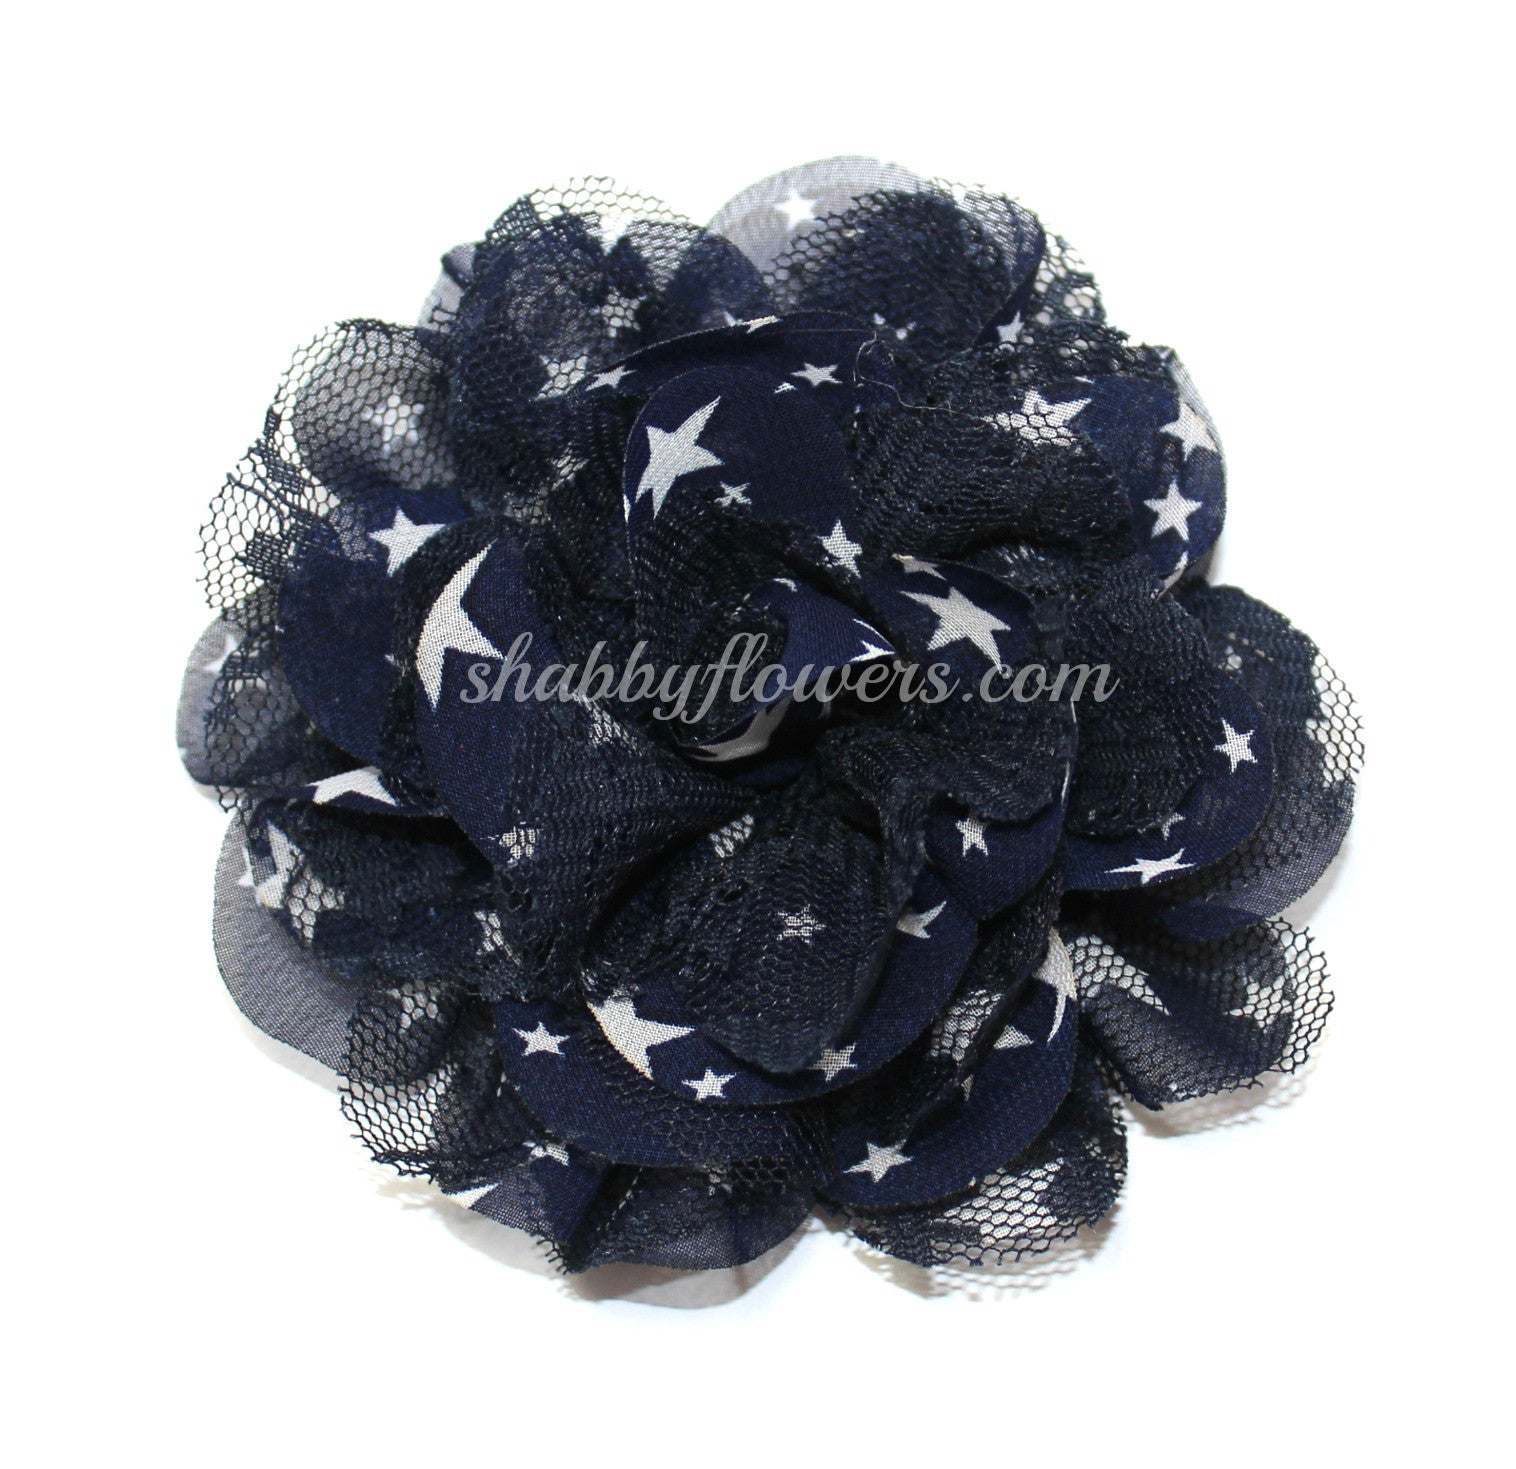 Chiffon and Lace Flower - Navy Star - shabbyflowers.com